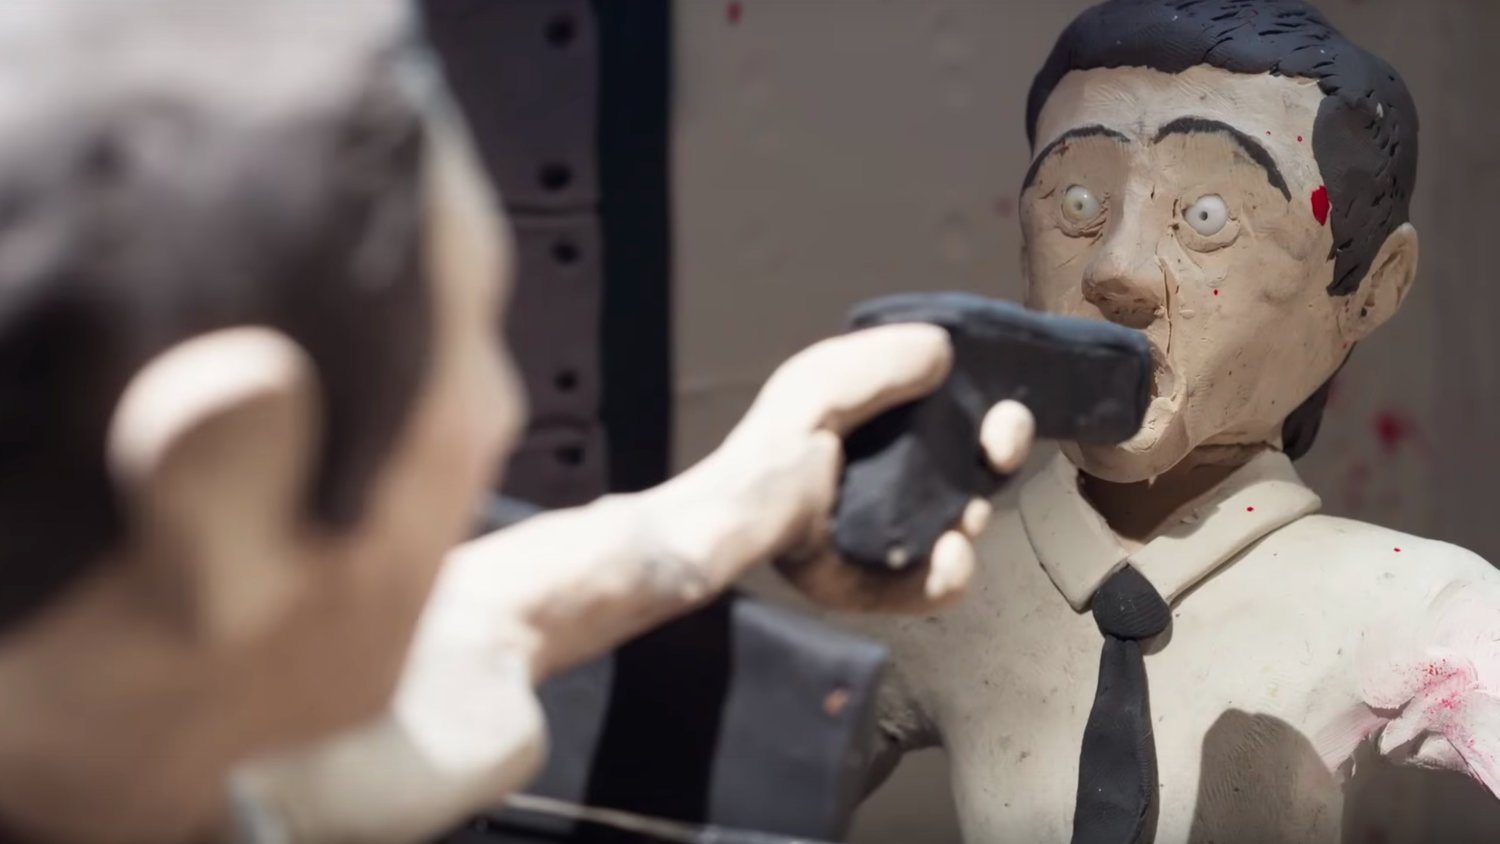 James Gunn's THE BELKO EXPERIMENT Gets a Violent and Bloody Claymation Short